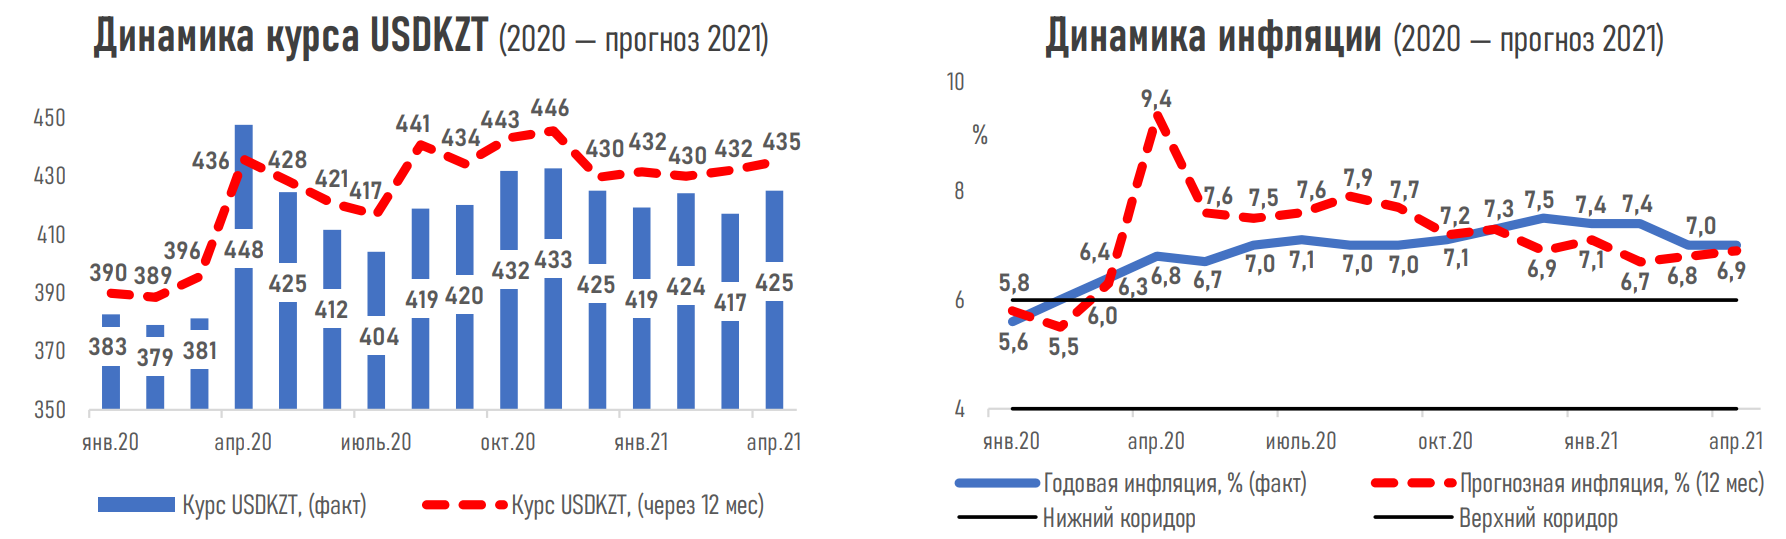 41% of experts expect the benchmark interest rate to increase-AFK 693883-Kapital.kz